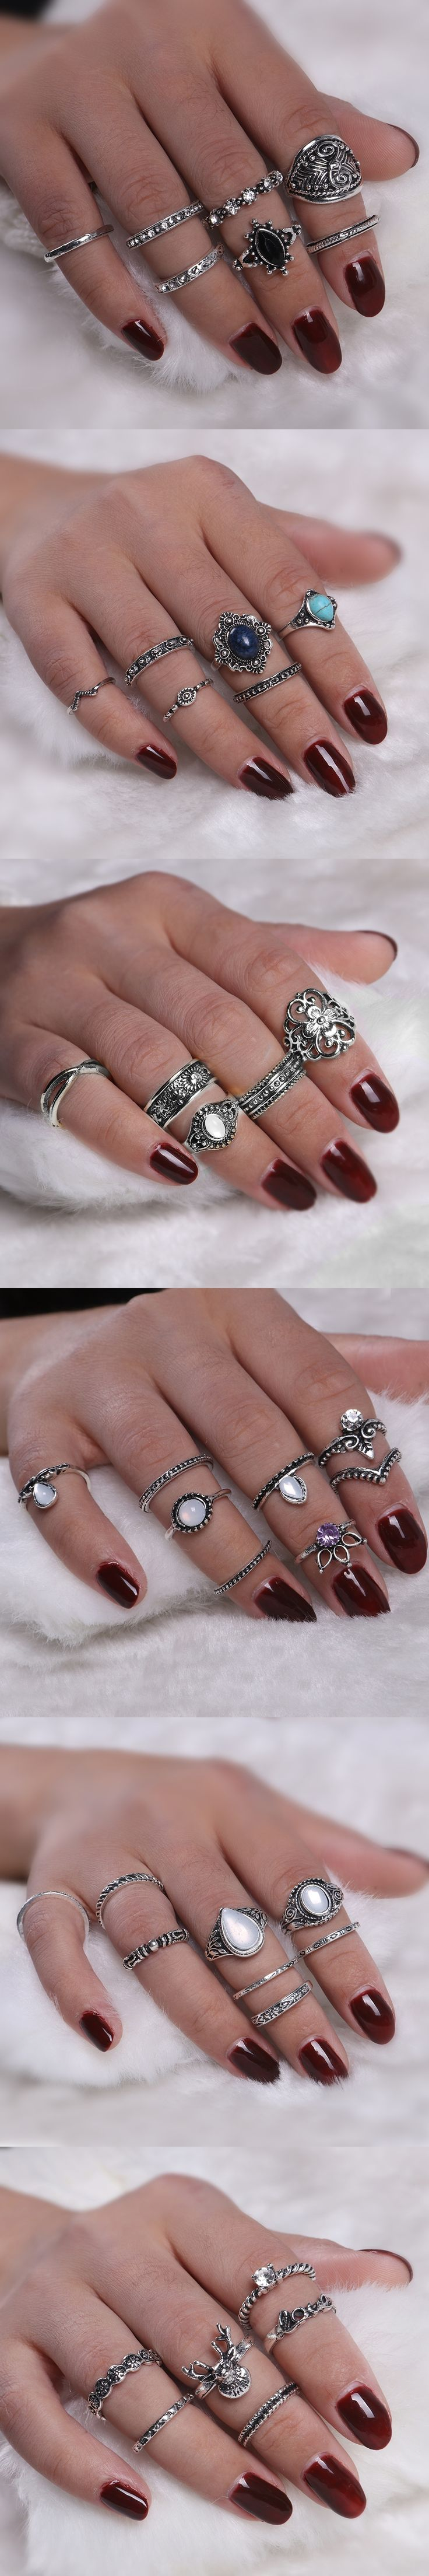 2017 Vintage Anel Feminino Rings For Women Silver Color Boho Chic Elephant Midi Knuckle Rings Set Punk Fashion Jewelry